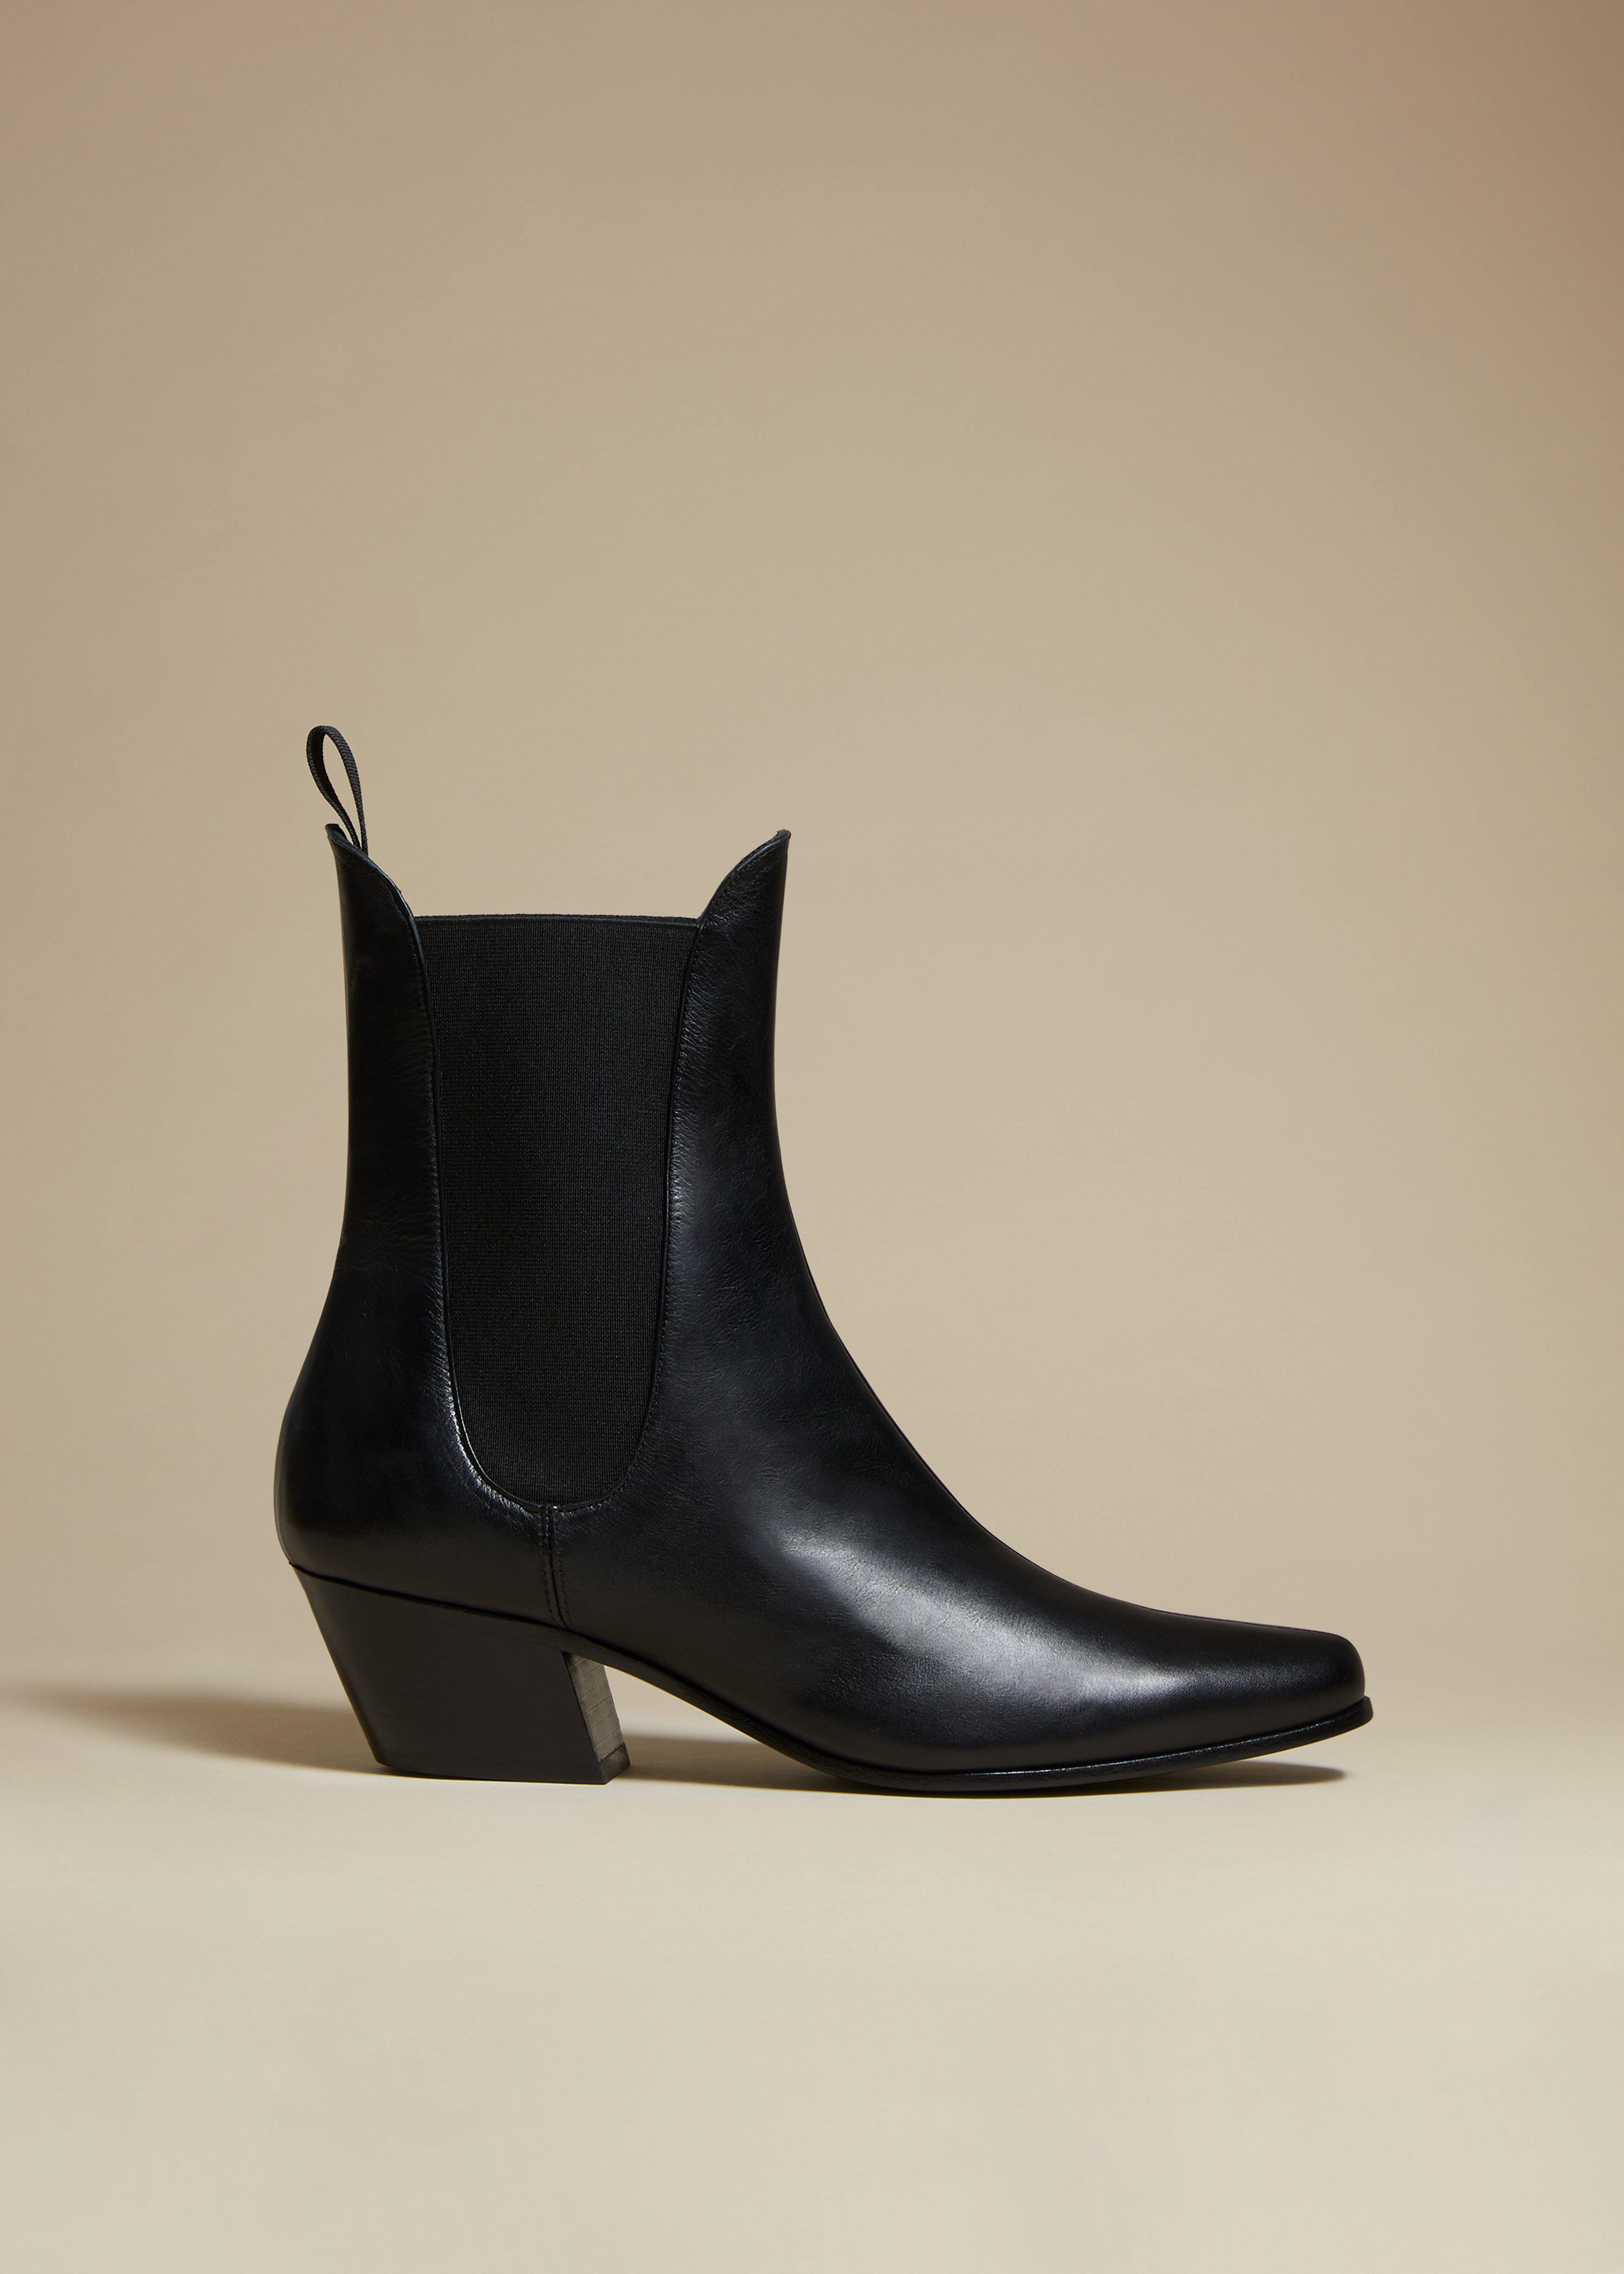 The Saratoga Boot in Black Leather